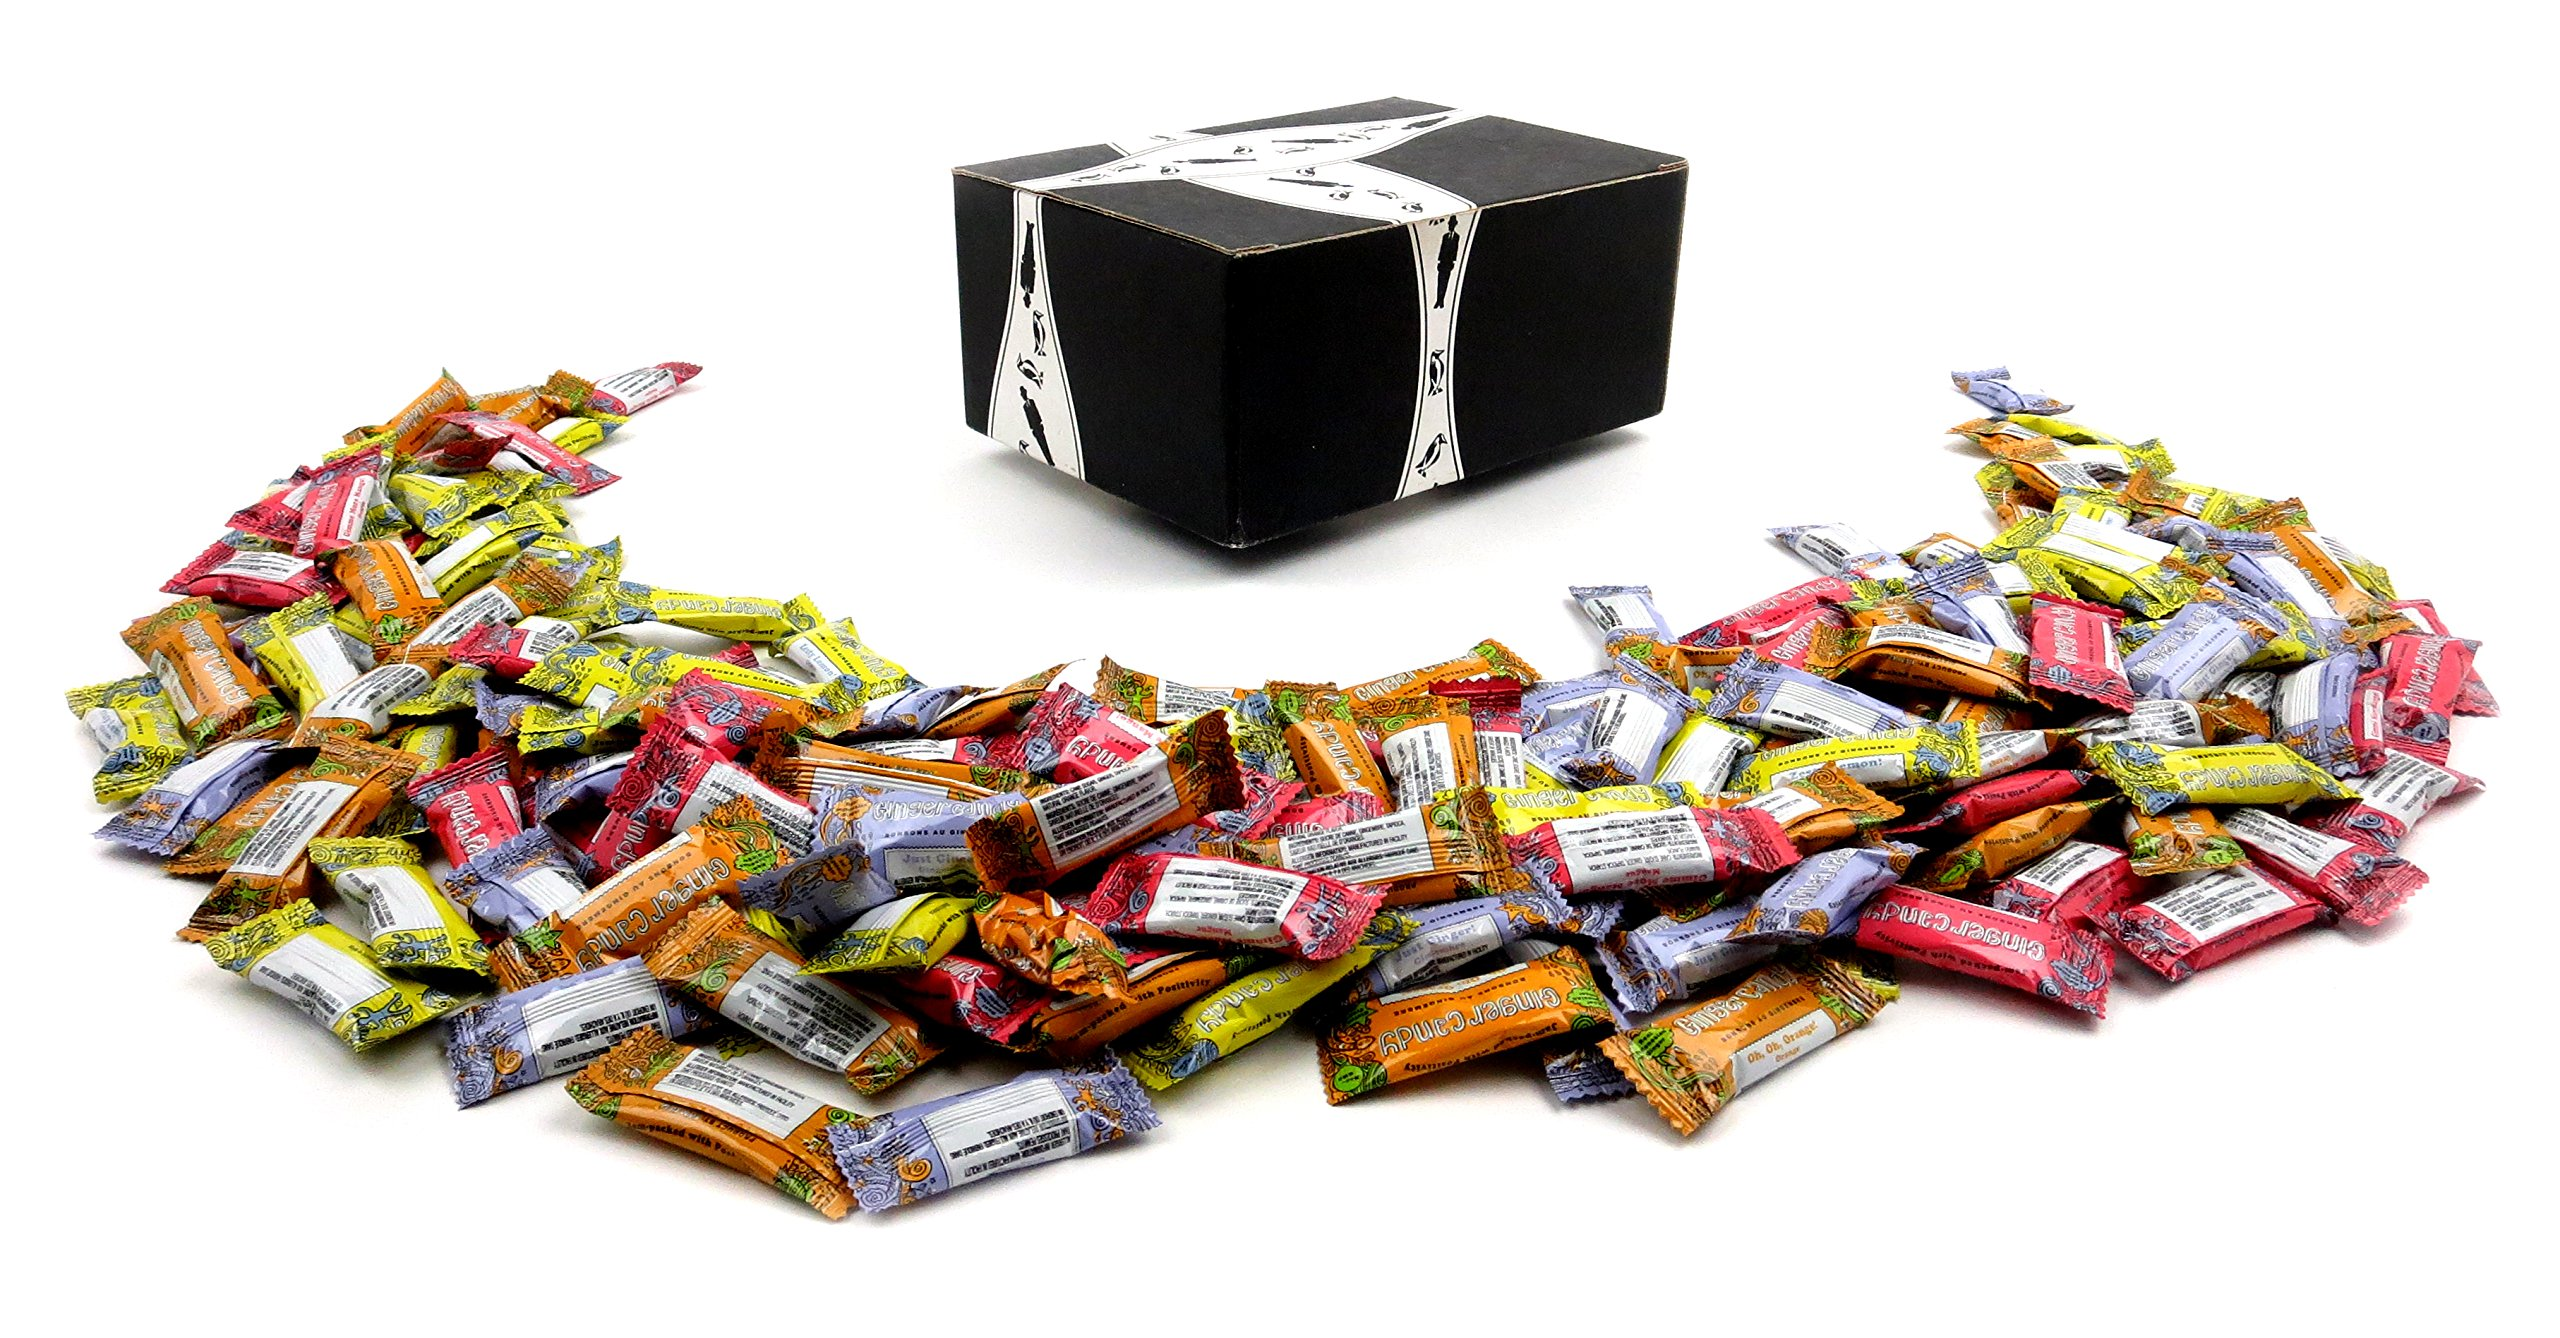 Gem Gem Ginger Candy 4-Flavor Variety: One 2 lb Assorted Bag of Original, Mango, Orange, and Lemon in a BlackTie Box